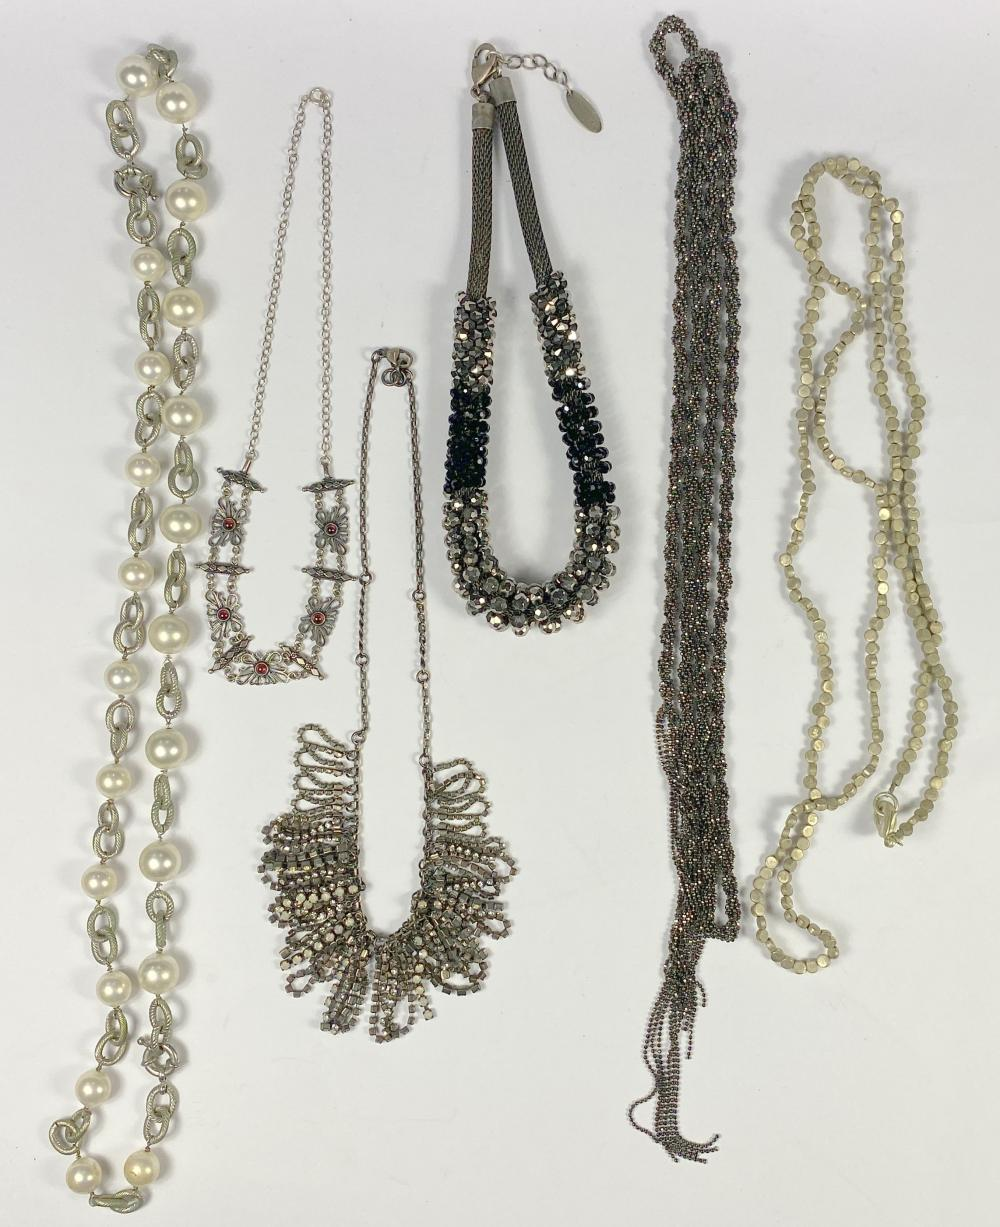 A Collection of Beaded Necklaces & A Beaded Lariat, including Mimco & Witchery